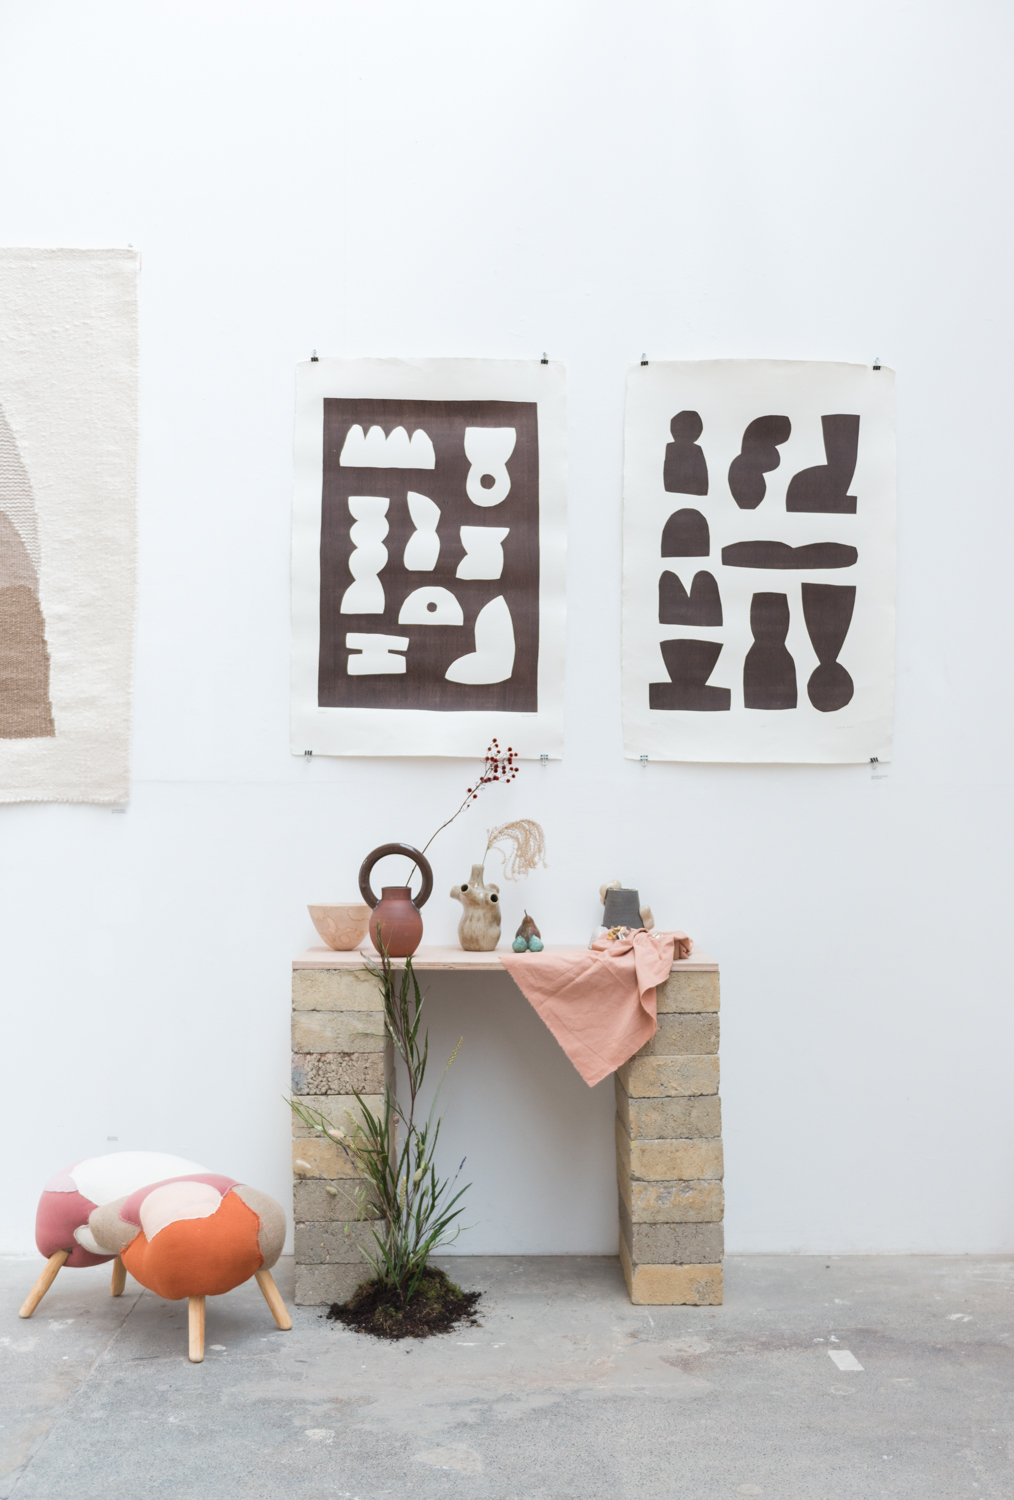 Prints are by Alessandro Chambers- AEand Studio